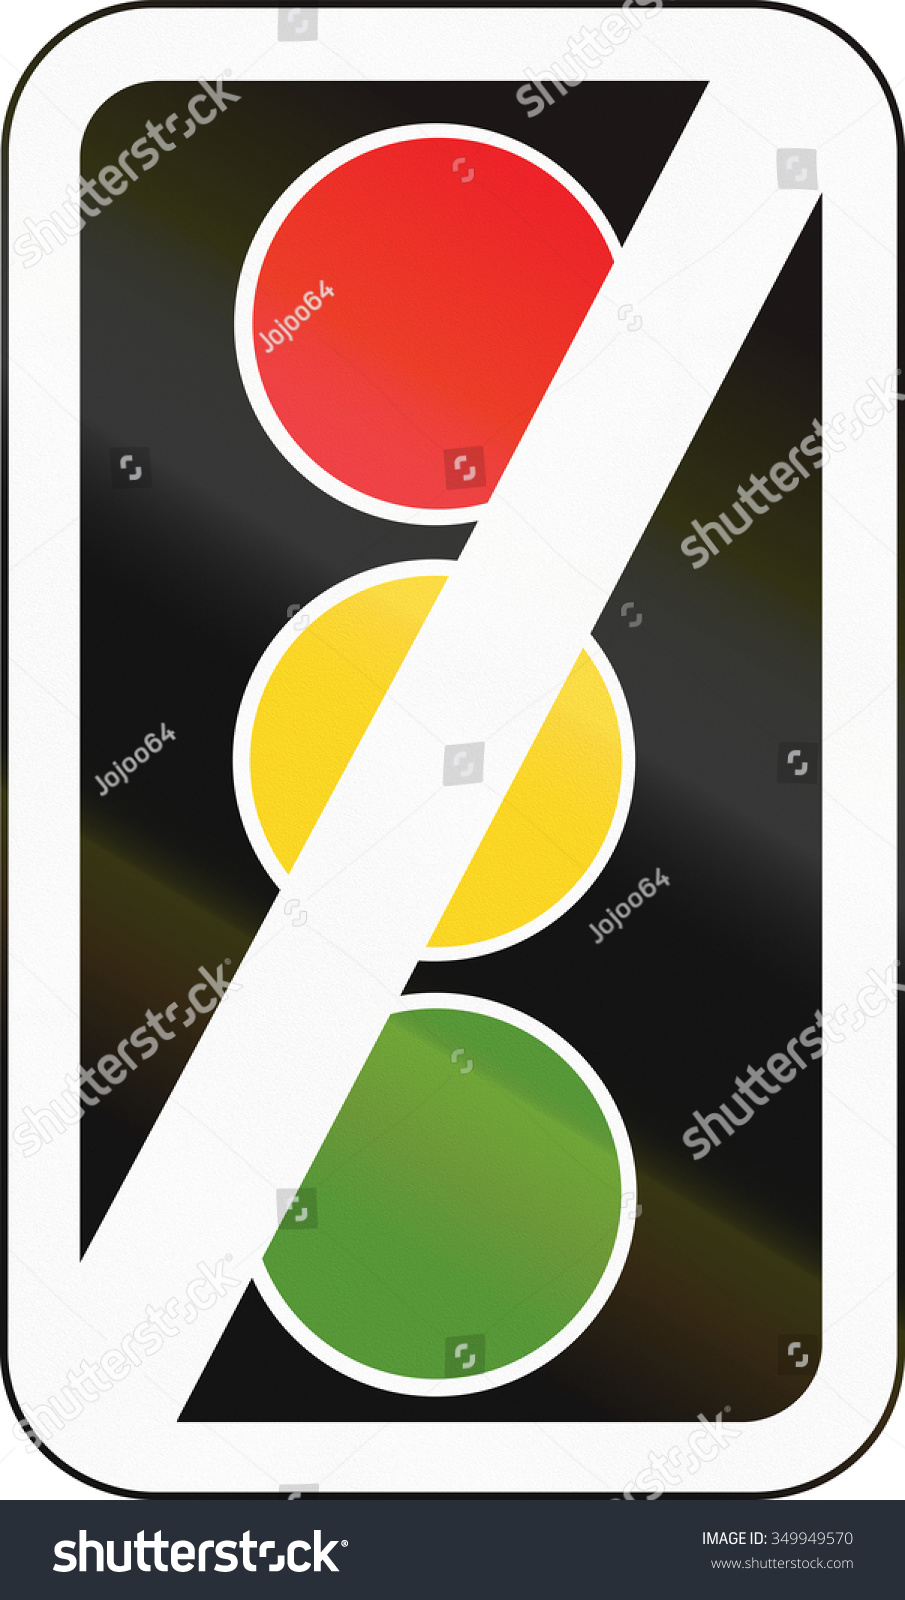 Road Sign In Pakistan   Traffic Signals Out Of Order .